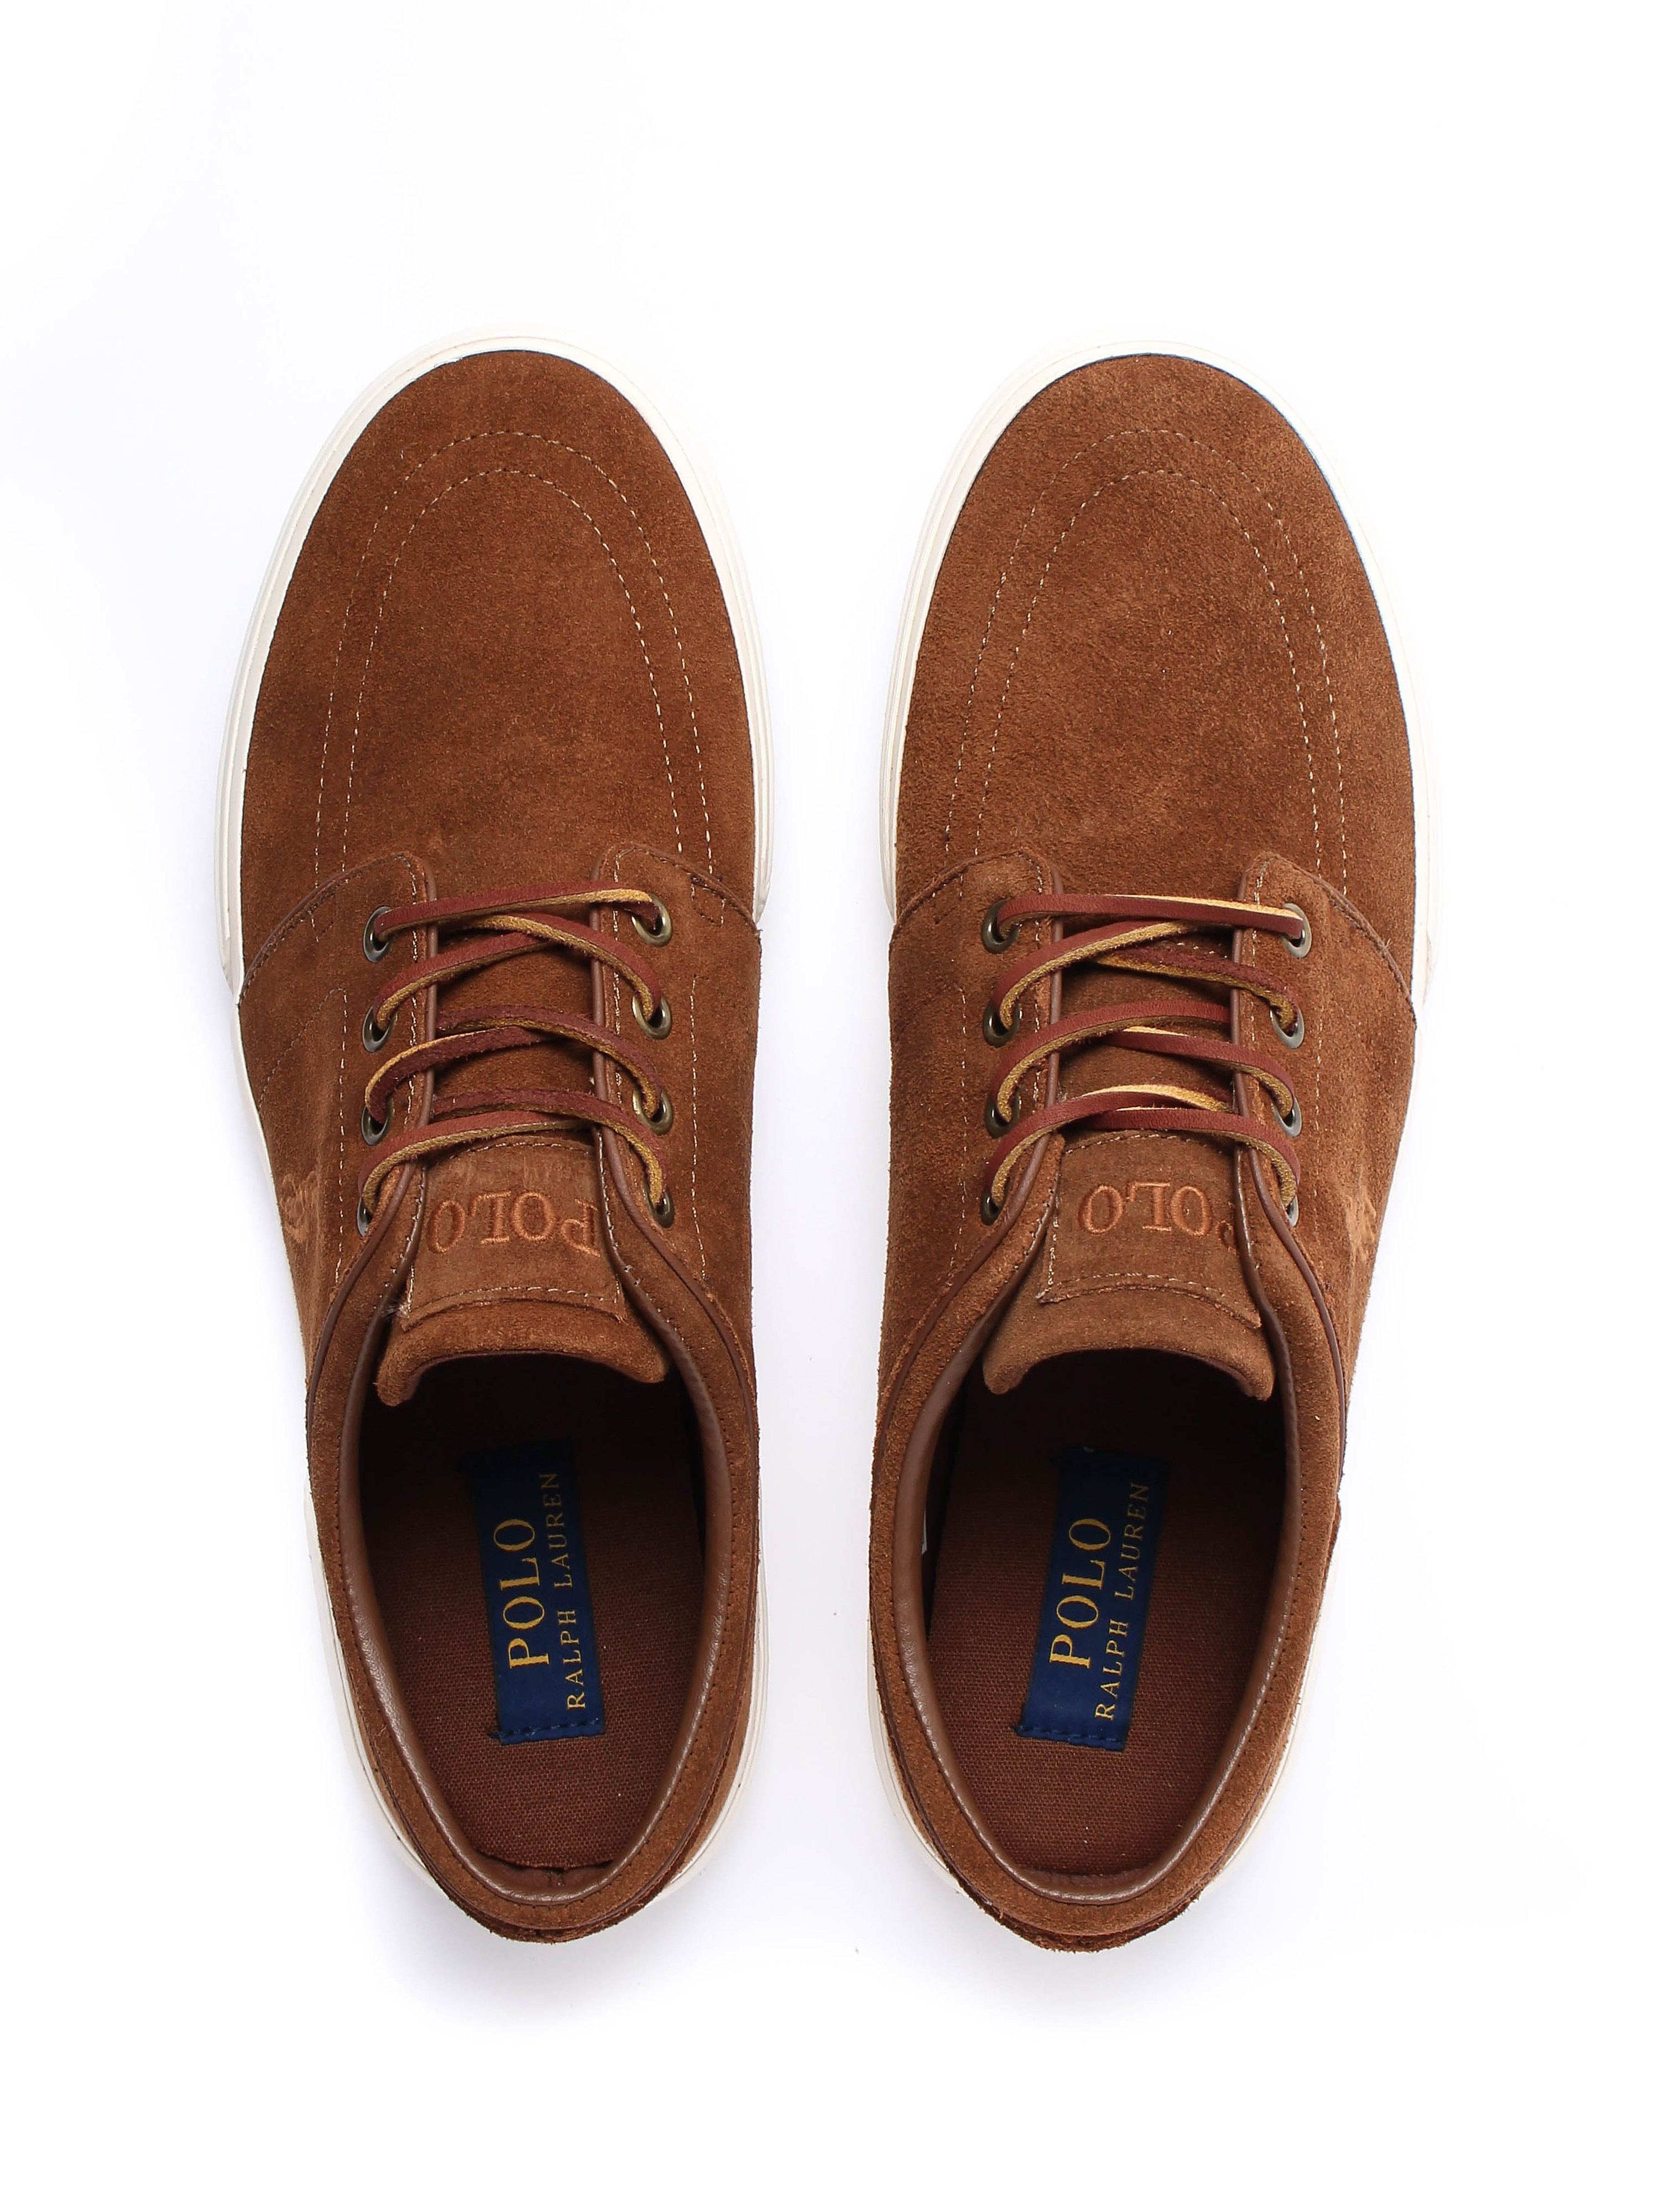 Polo Ralph Lauren Faxon Low - New